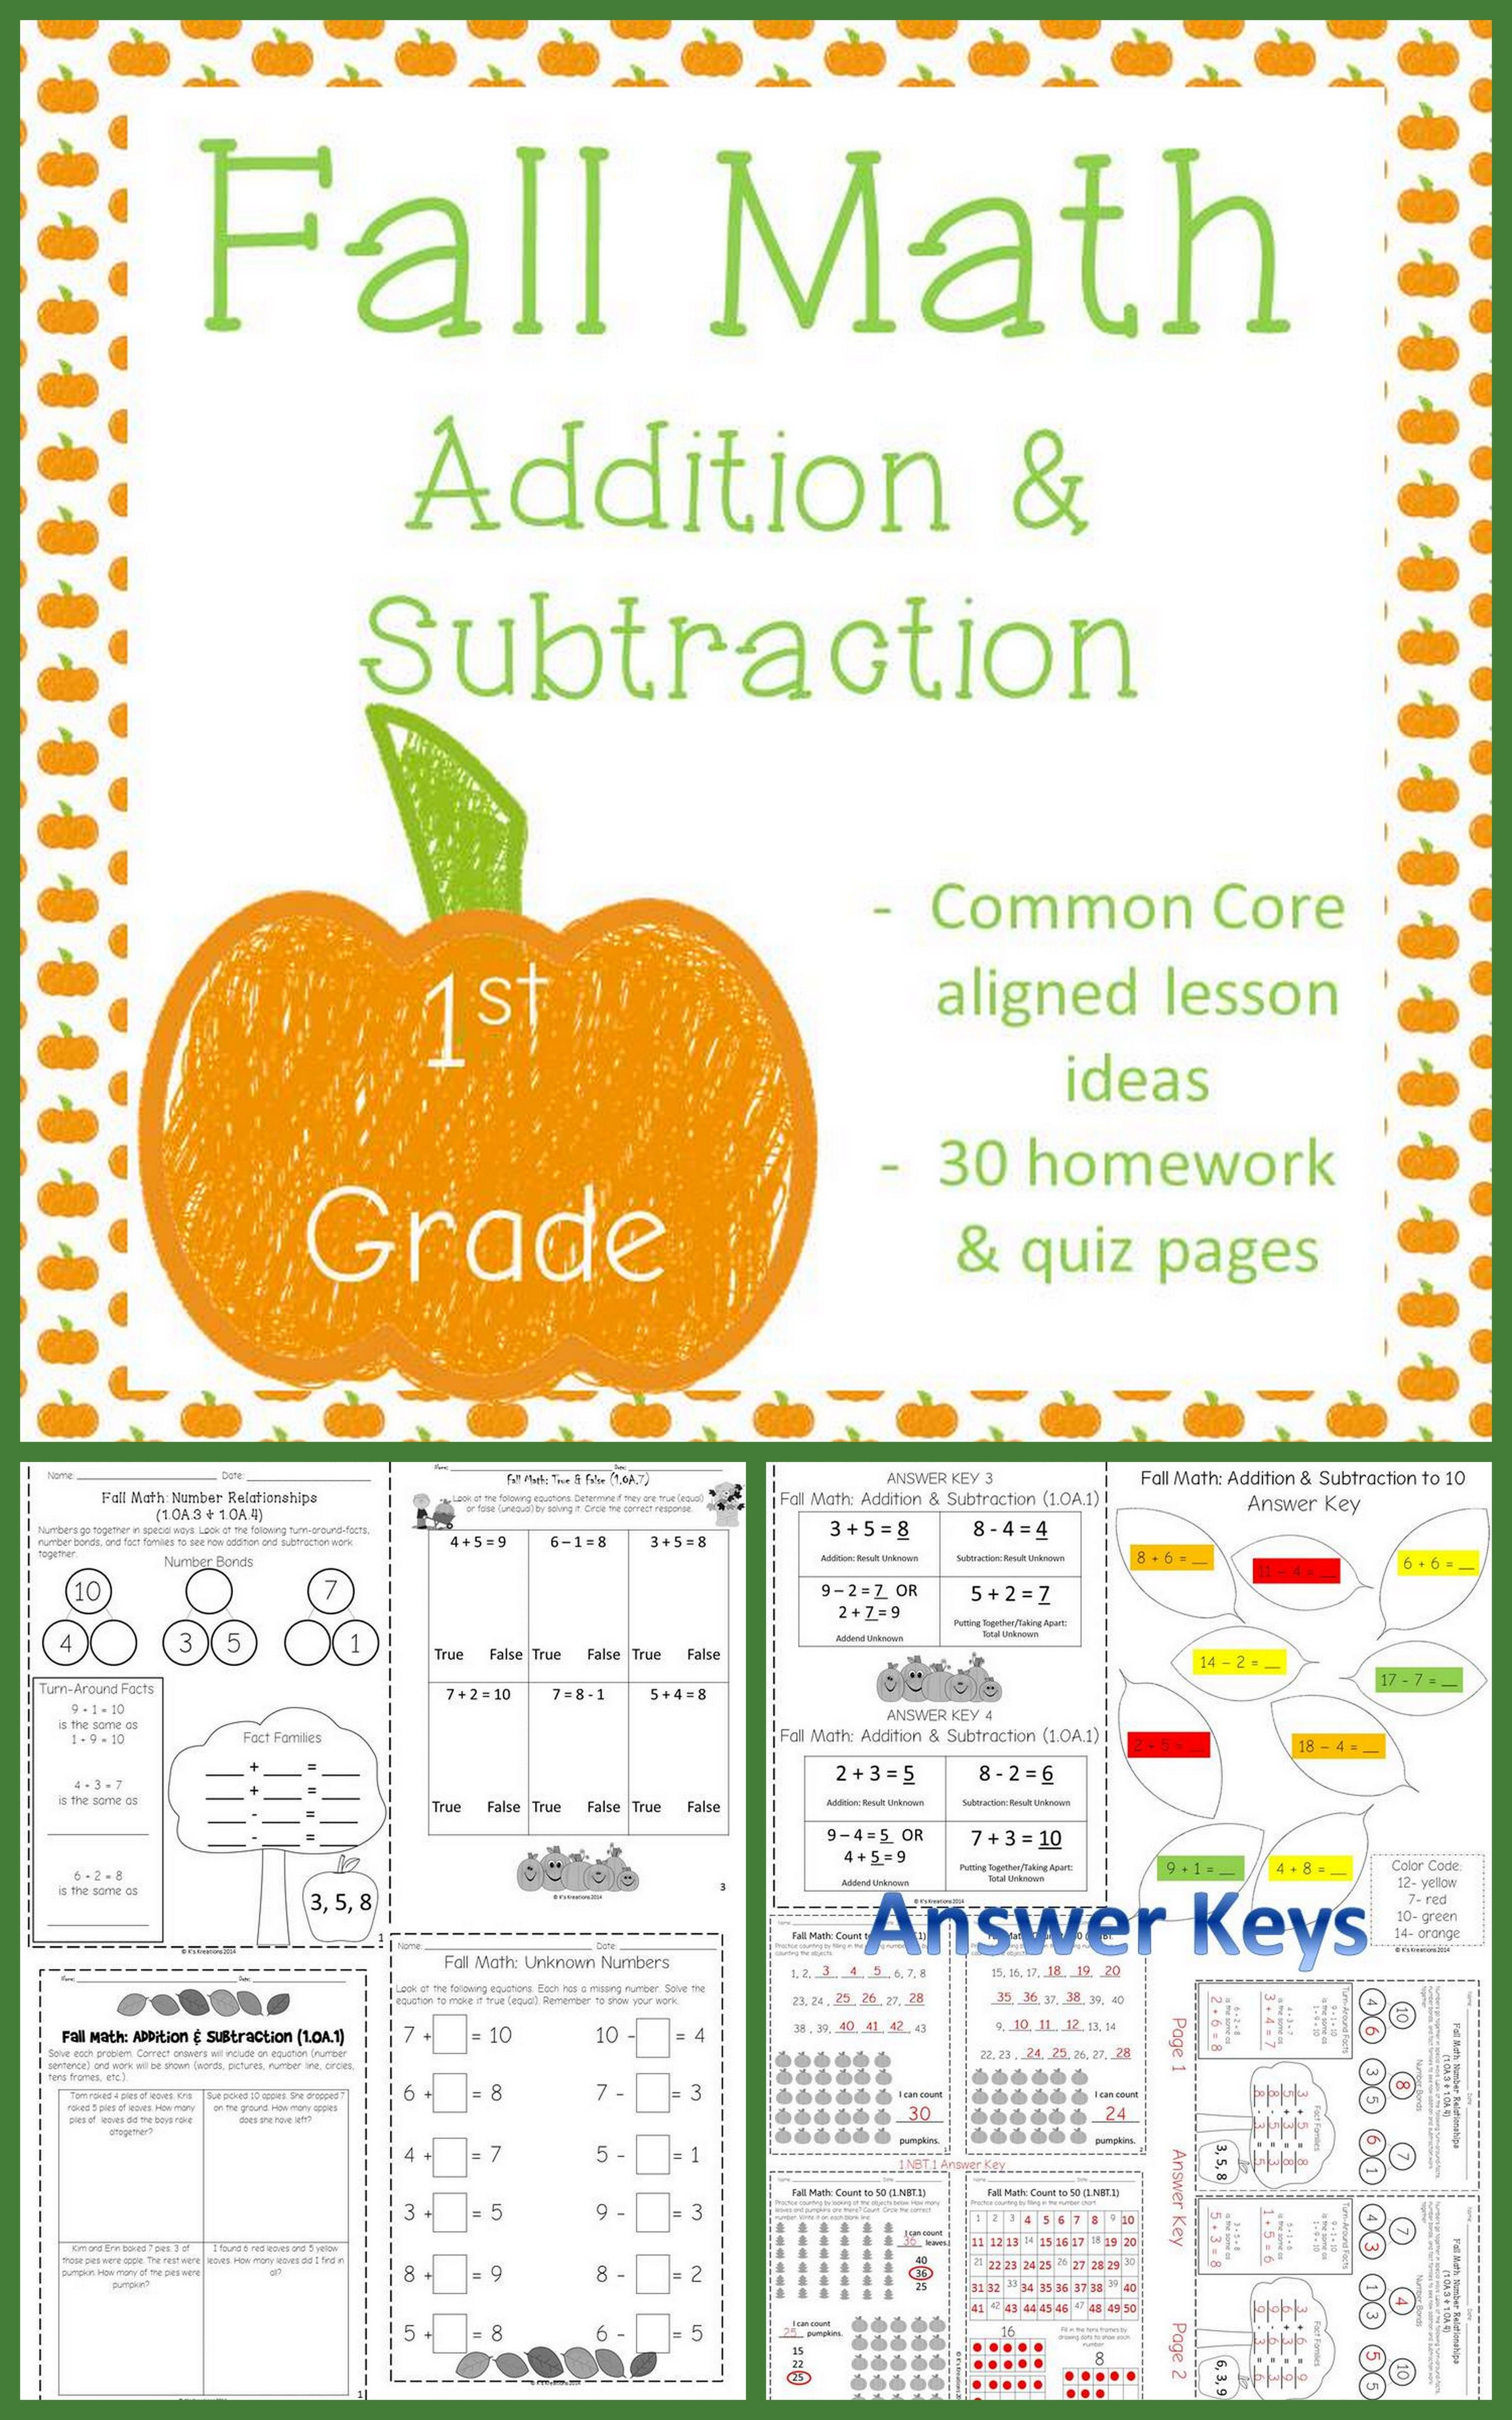 1st Grade Fall Math Homework Worksheets With Images